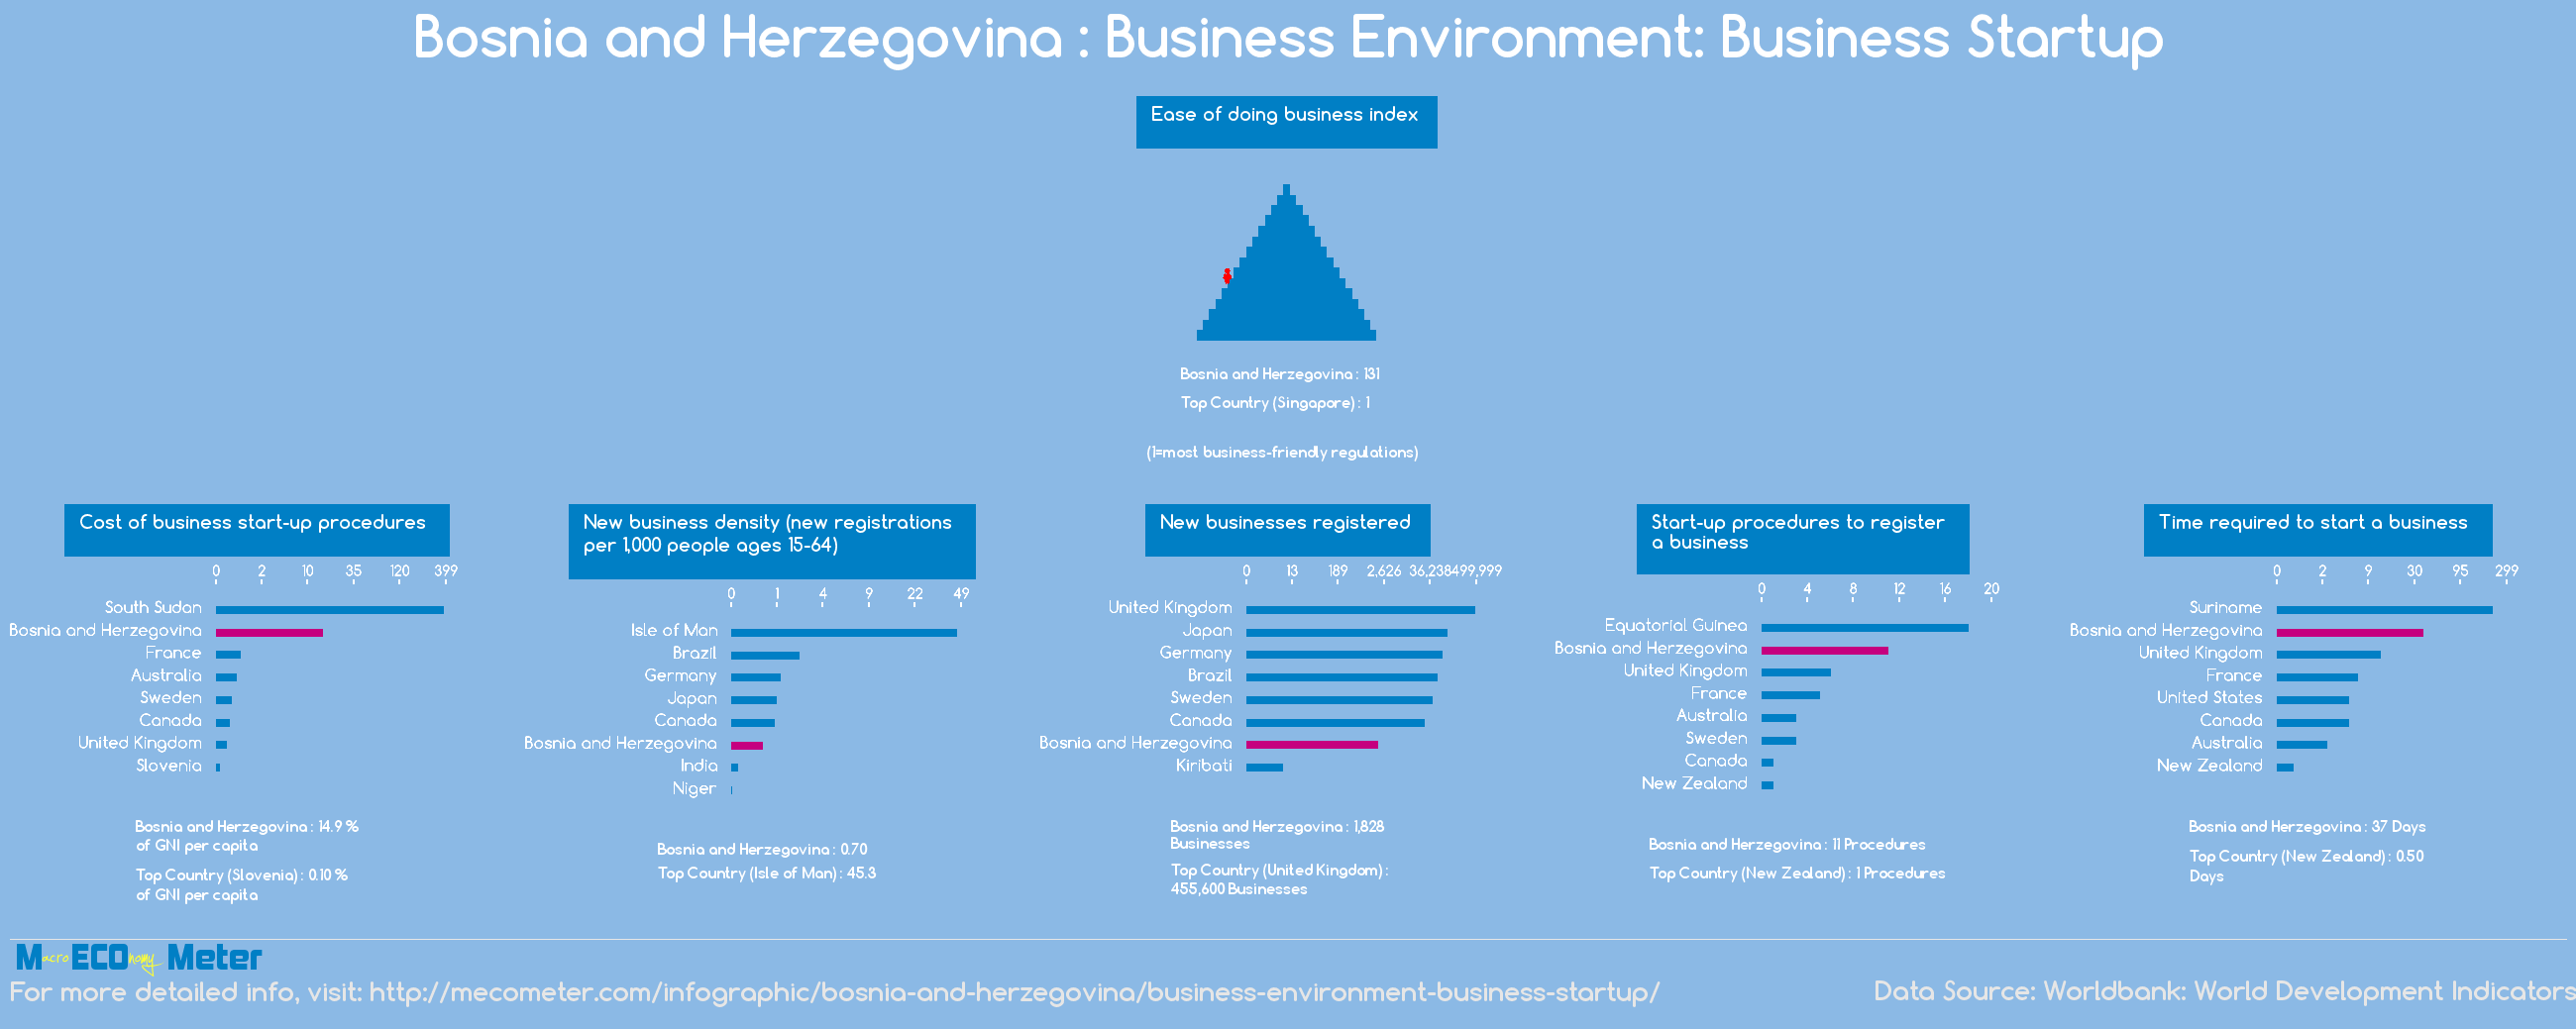 Bosnia and Herzegovina : Business Environment: Business Startup